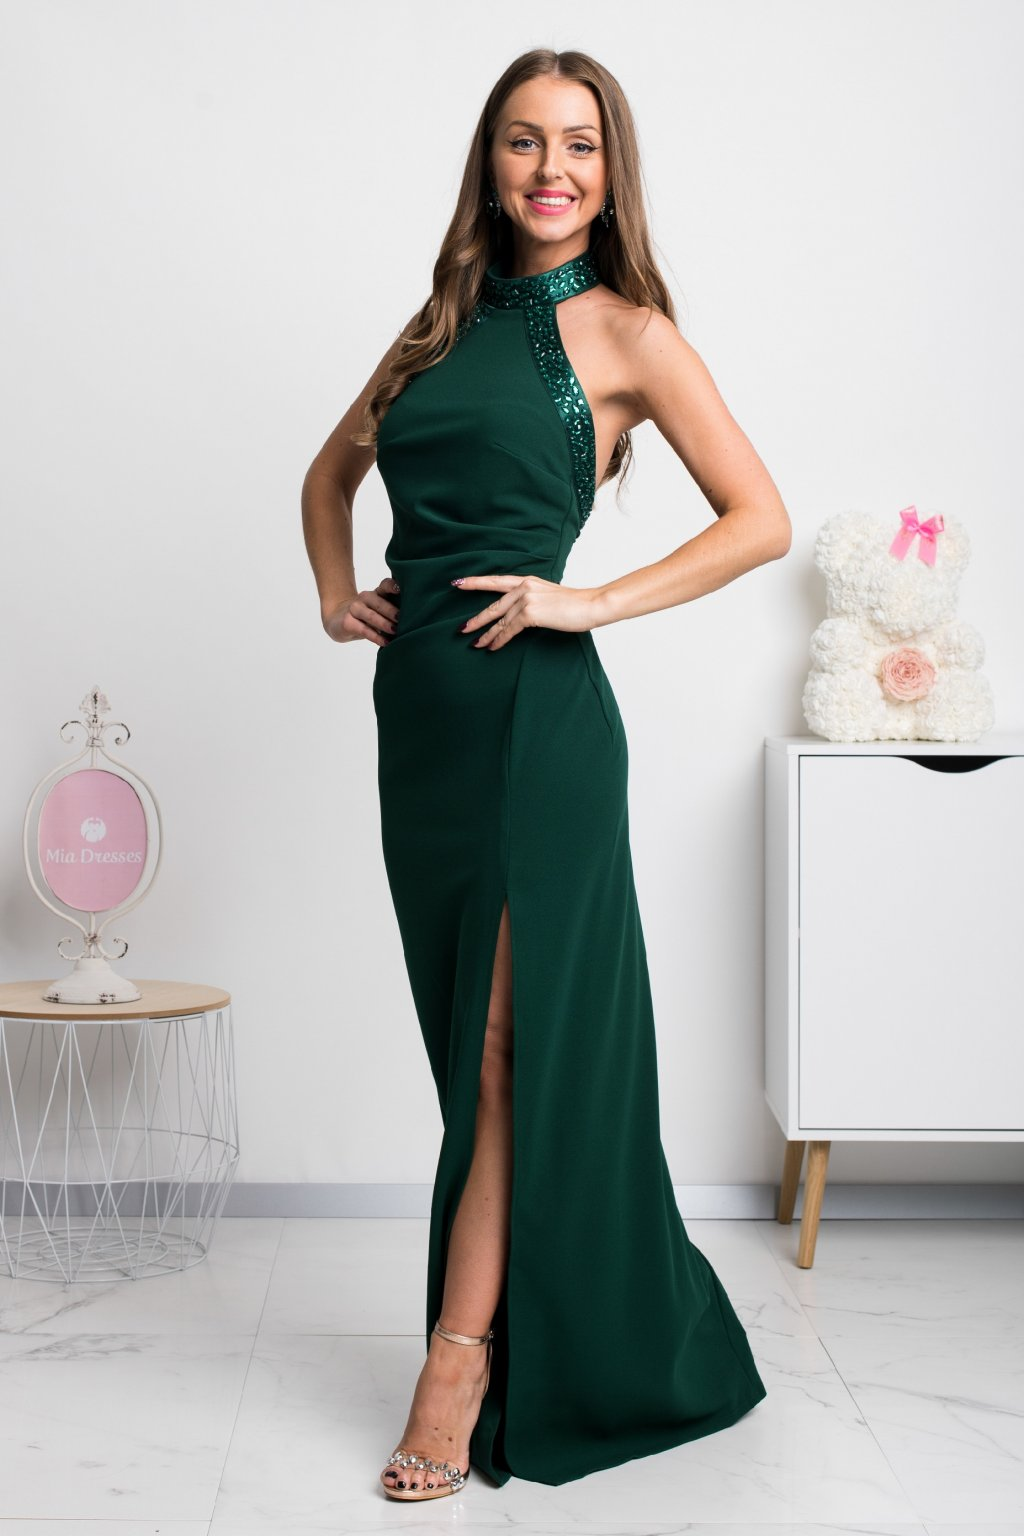 Green bodycon backless dress with rhinestones